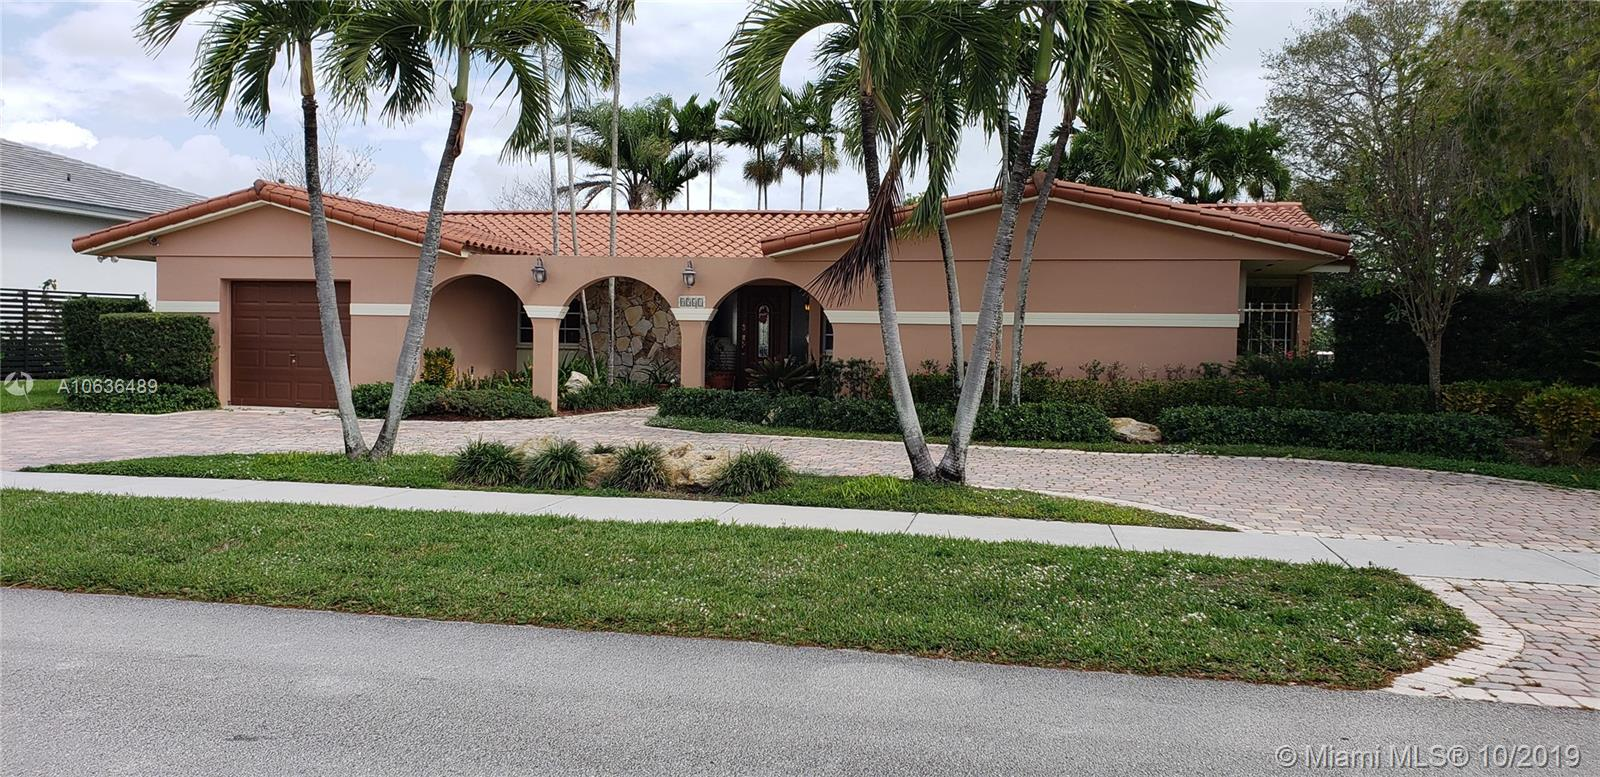 8541 SW 93 CT, Kendall, Florida